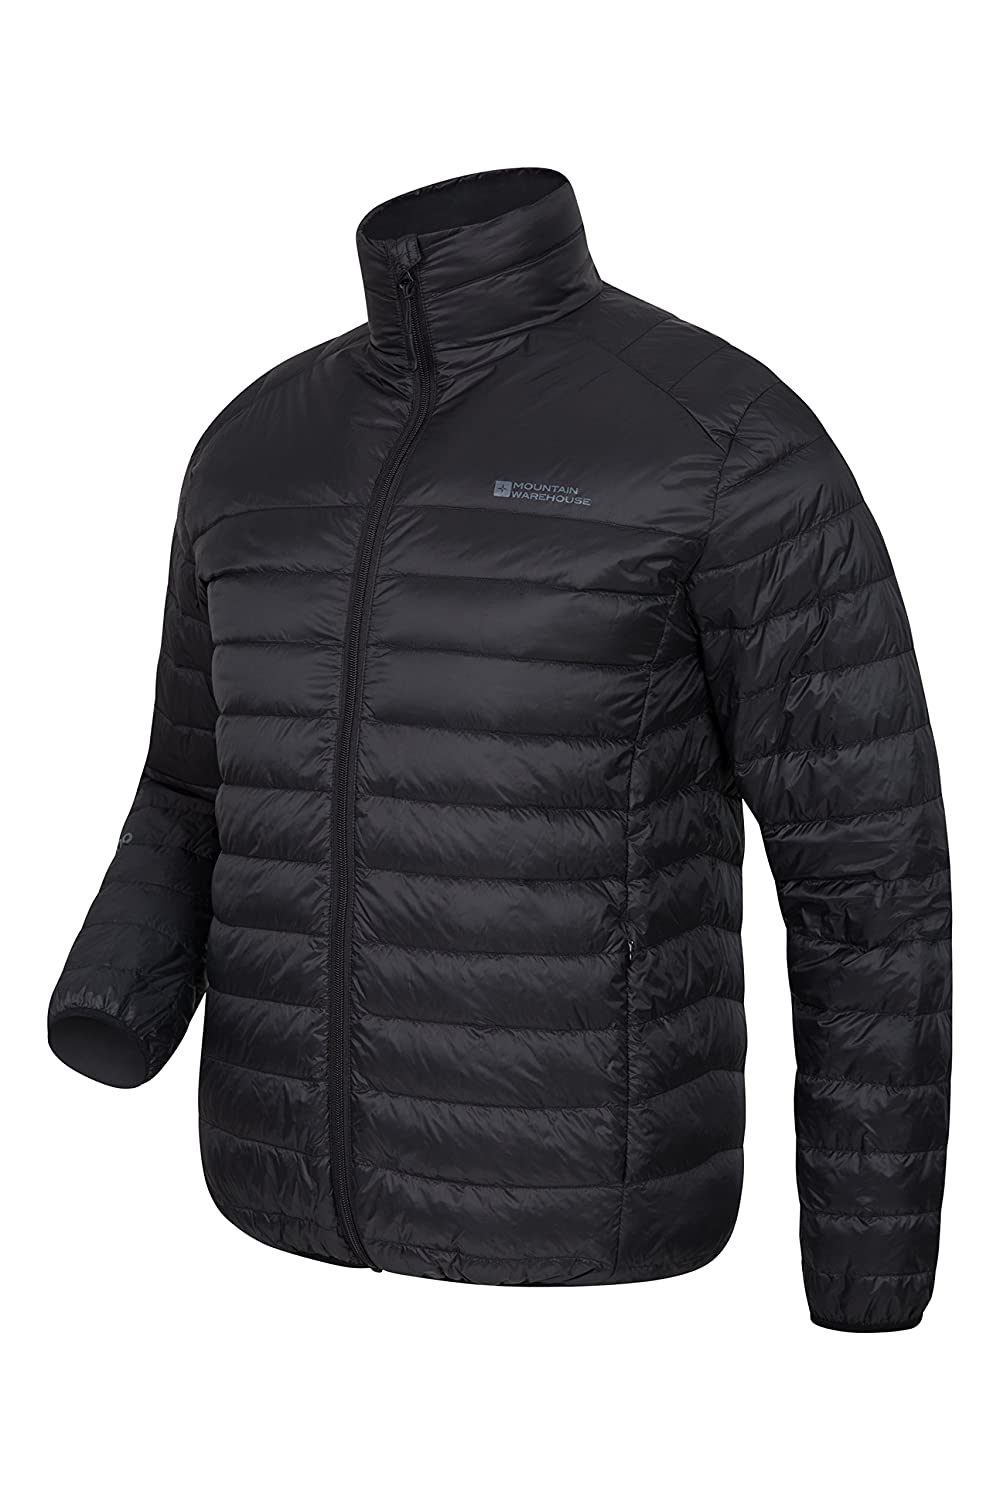 e948267b11cb4 Mountain Warehouse Featherweight Mens Down Jacket - Water Resistant:  Amazon.ca: Sports & Outdoors